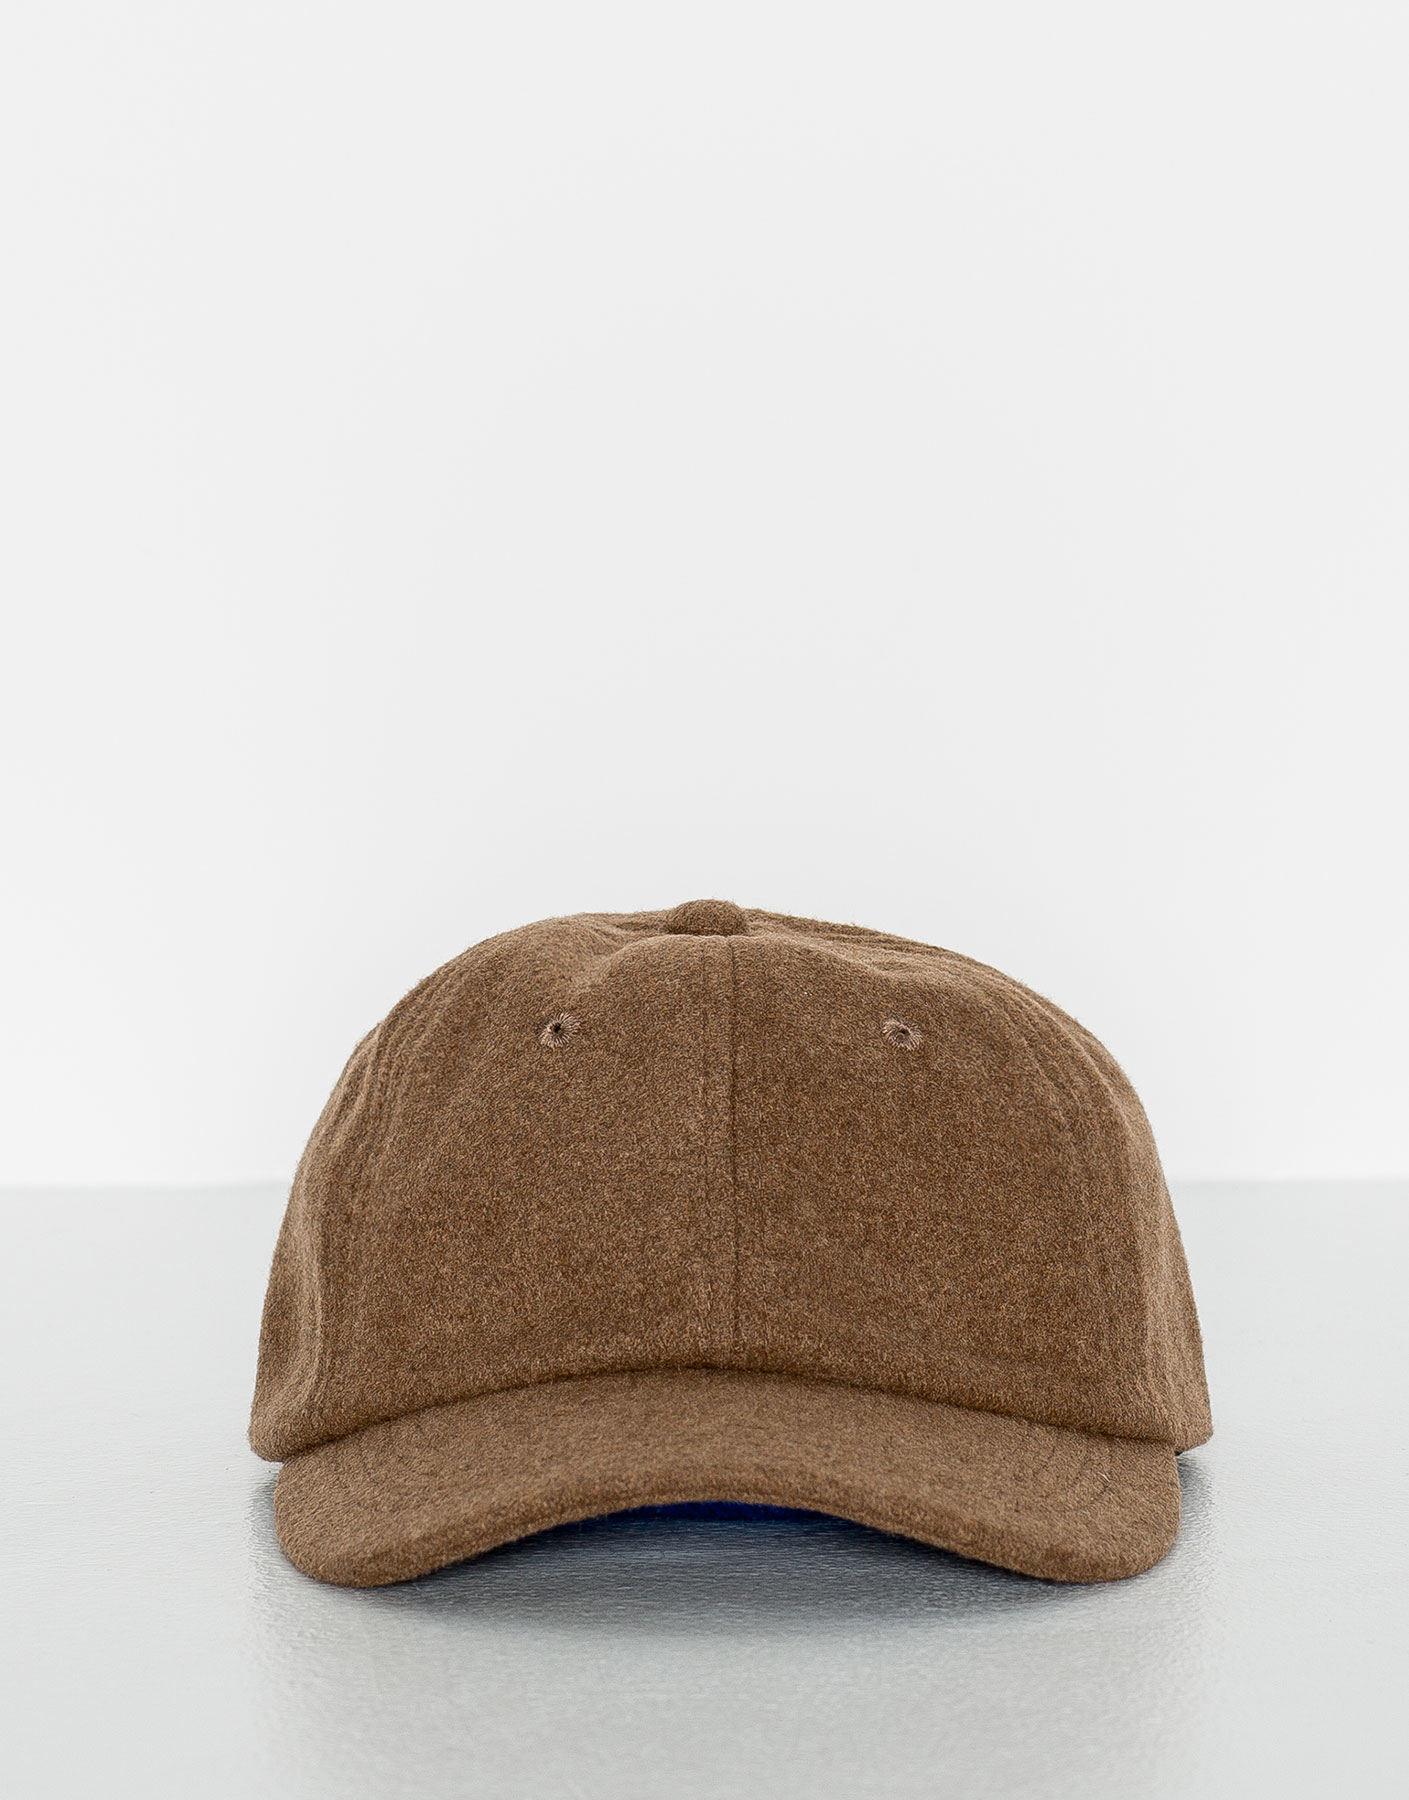 Textured weave sand-coloured hat